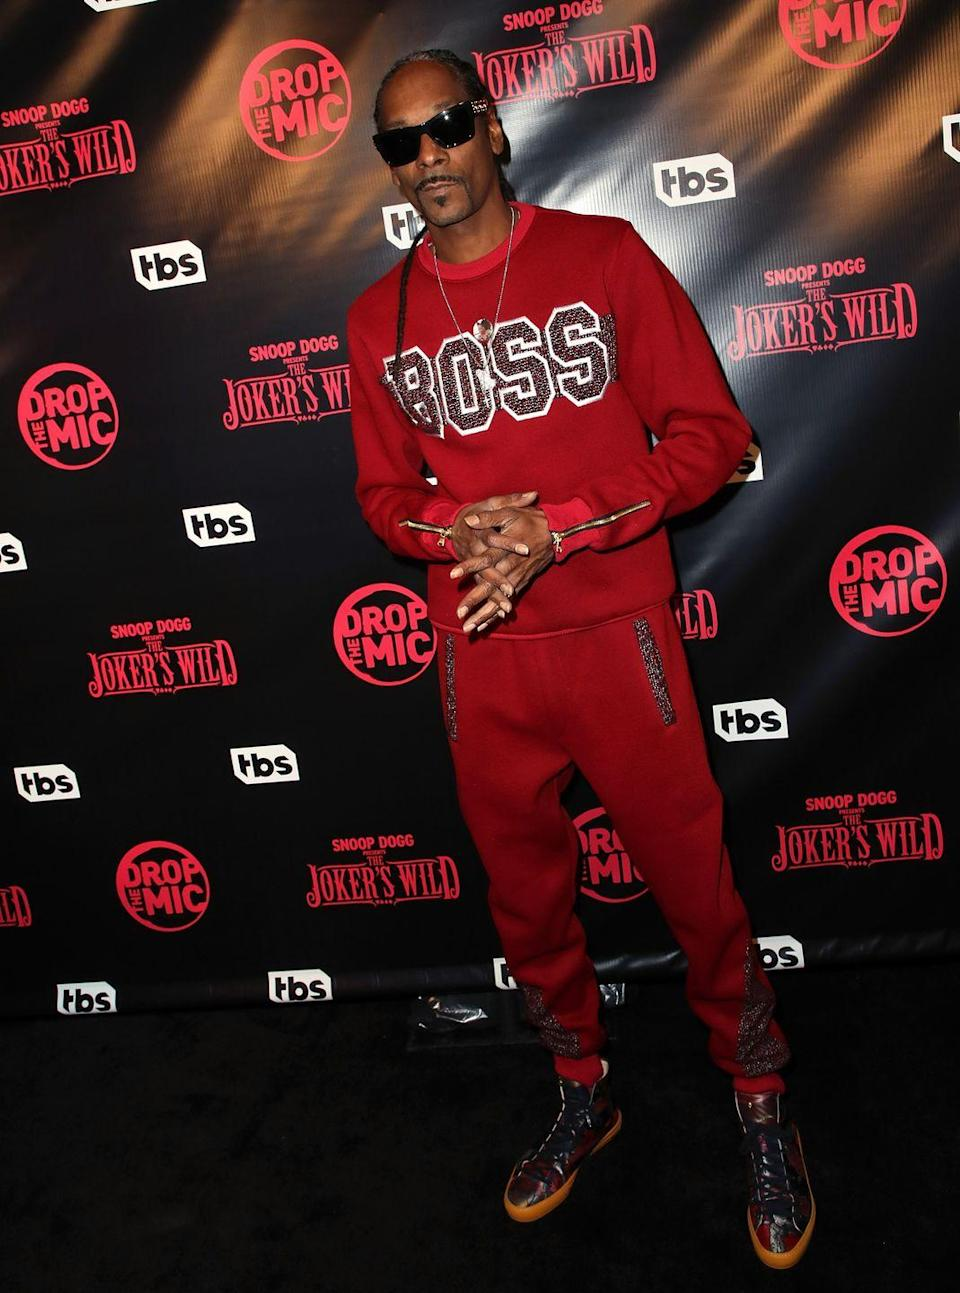 <p>A version of the popular game show was revived by TBS in 2017 as <em>Snoop Dogg Presents The Joker's Wild</em>. In 2019, the show moved to TNT. The rapper is also the executive producer. Contestants have a chance to win big bucks, unless they decide to quit and accept Snoop's cash offer.</p>